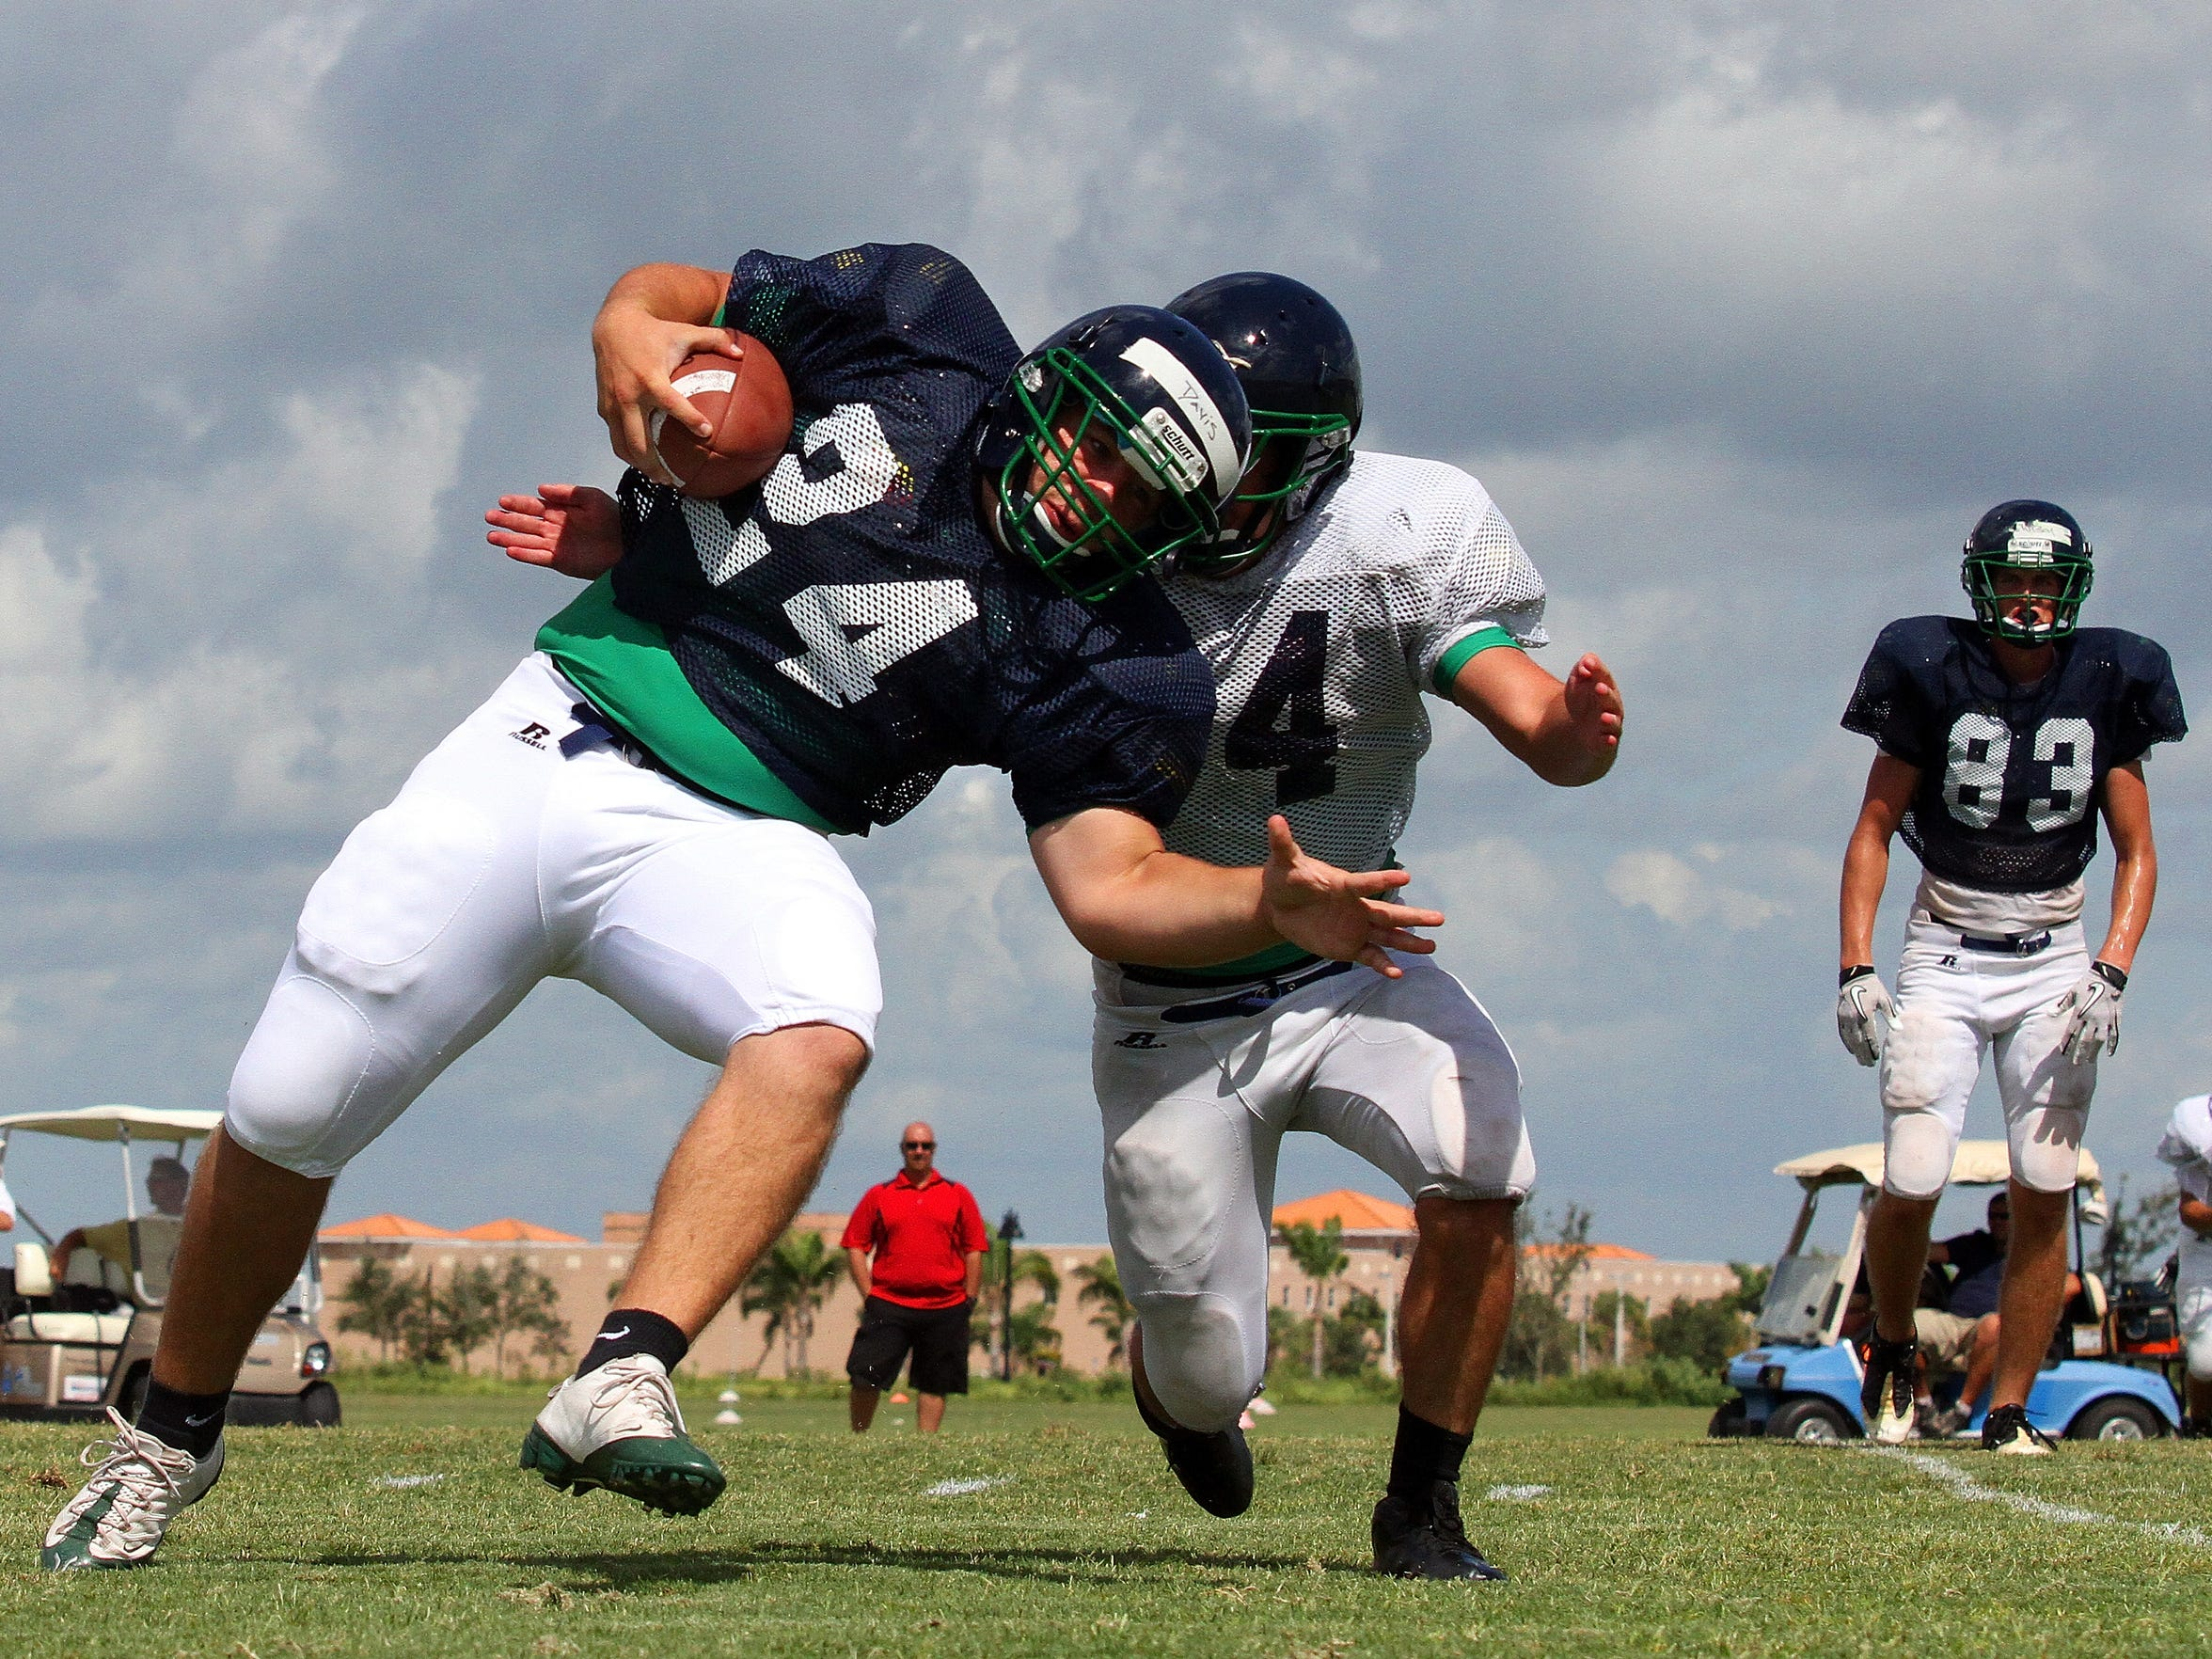 Ave Maria running back Stefan Davis tries to elude the tackle of cornerback Blake Heiman during practice at Ave Maria University in 2011.